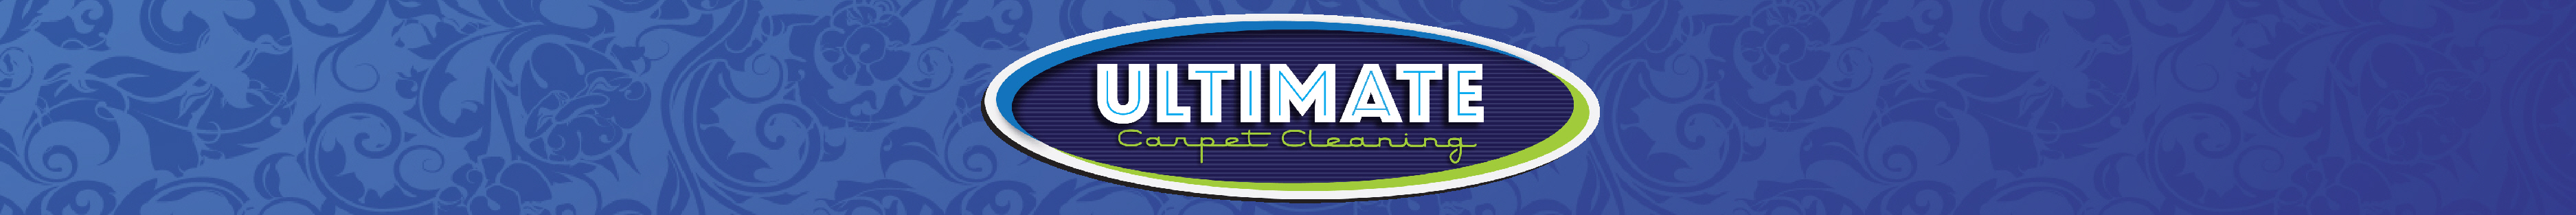 Ultimate Carpet Cleaning Boise